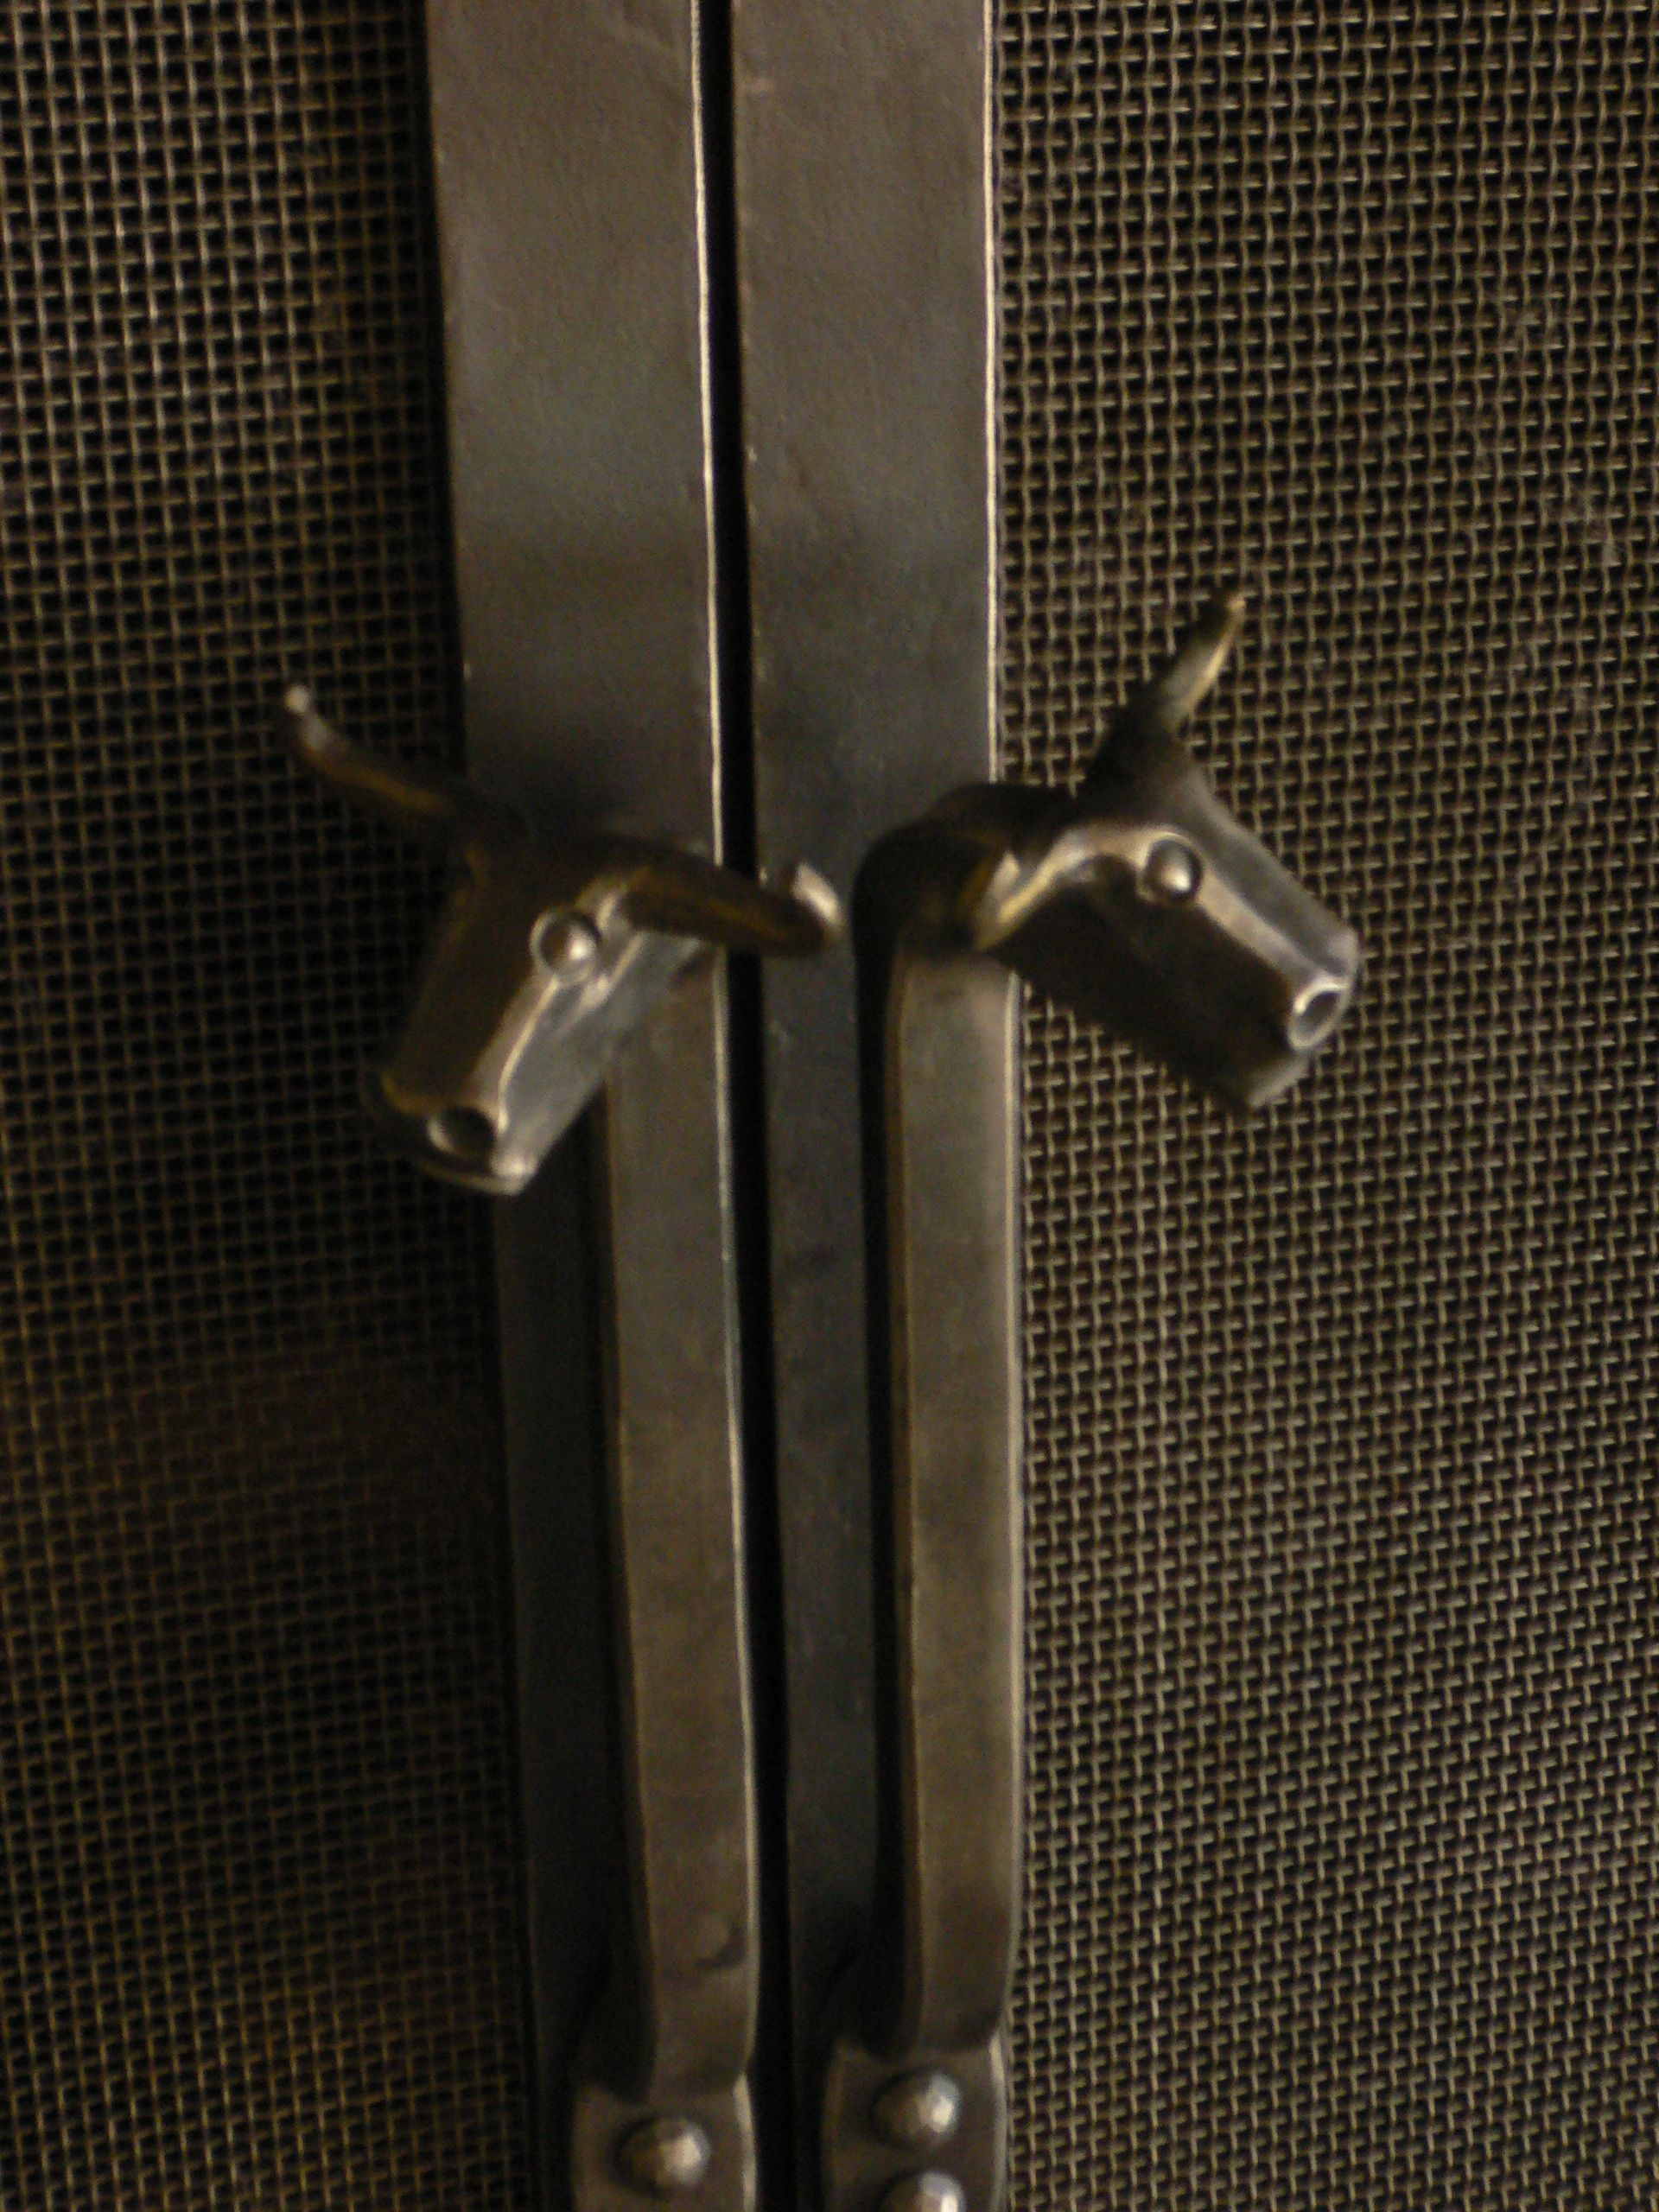 blacksmith forged iron door handles on the fireplace bull heads